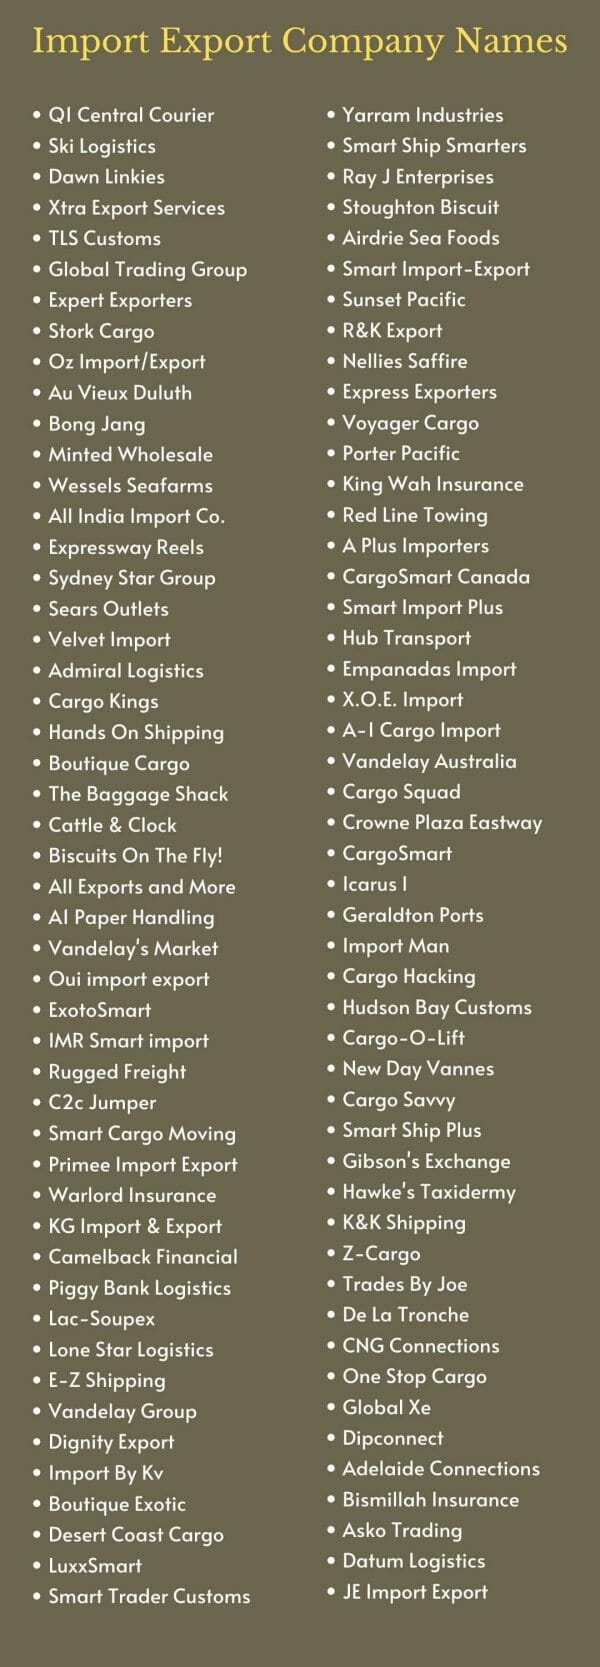 Import Export Company Names: infographic